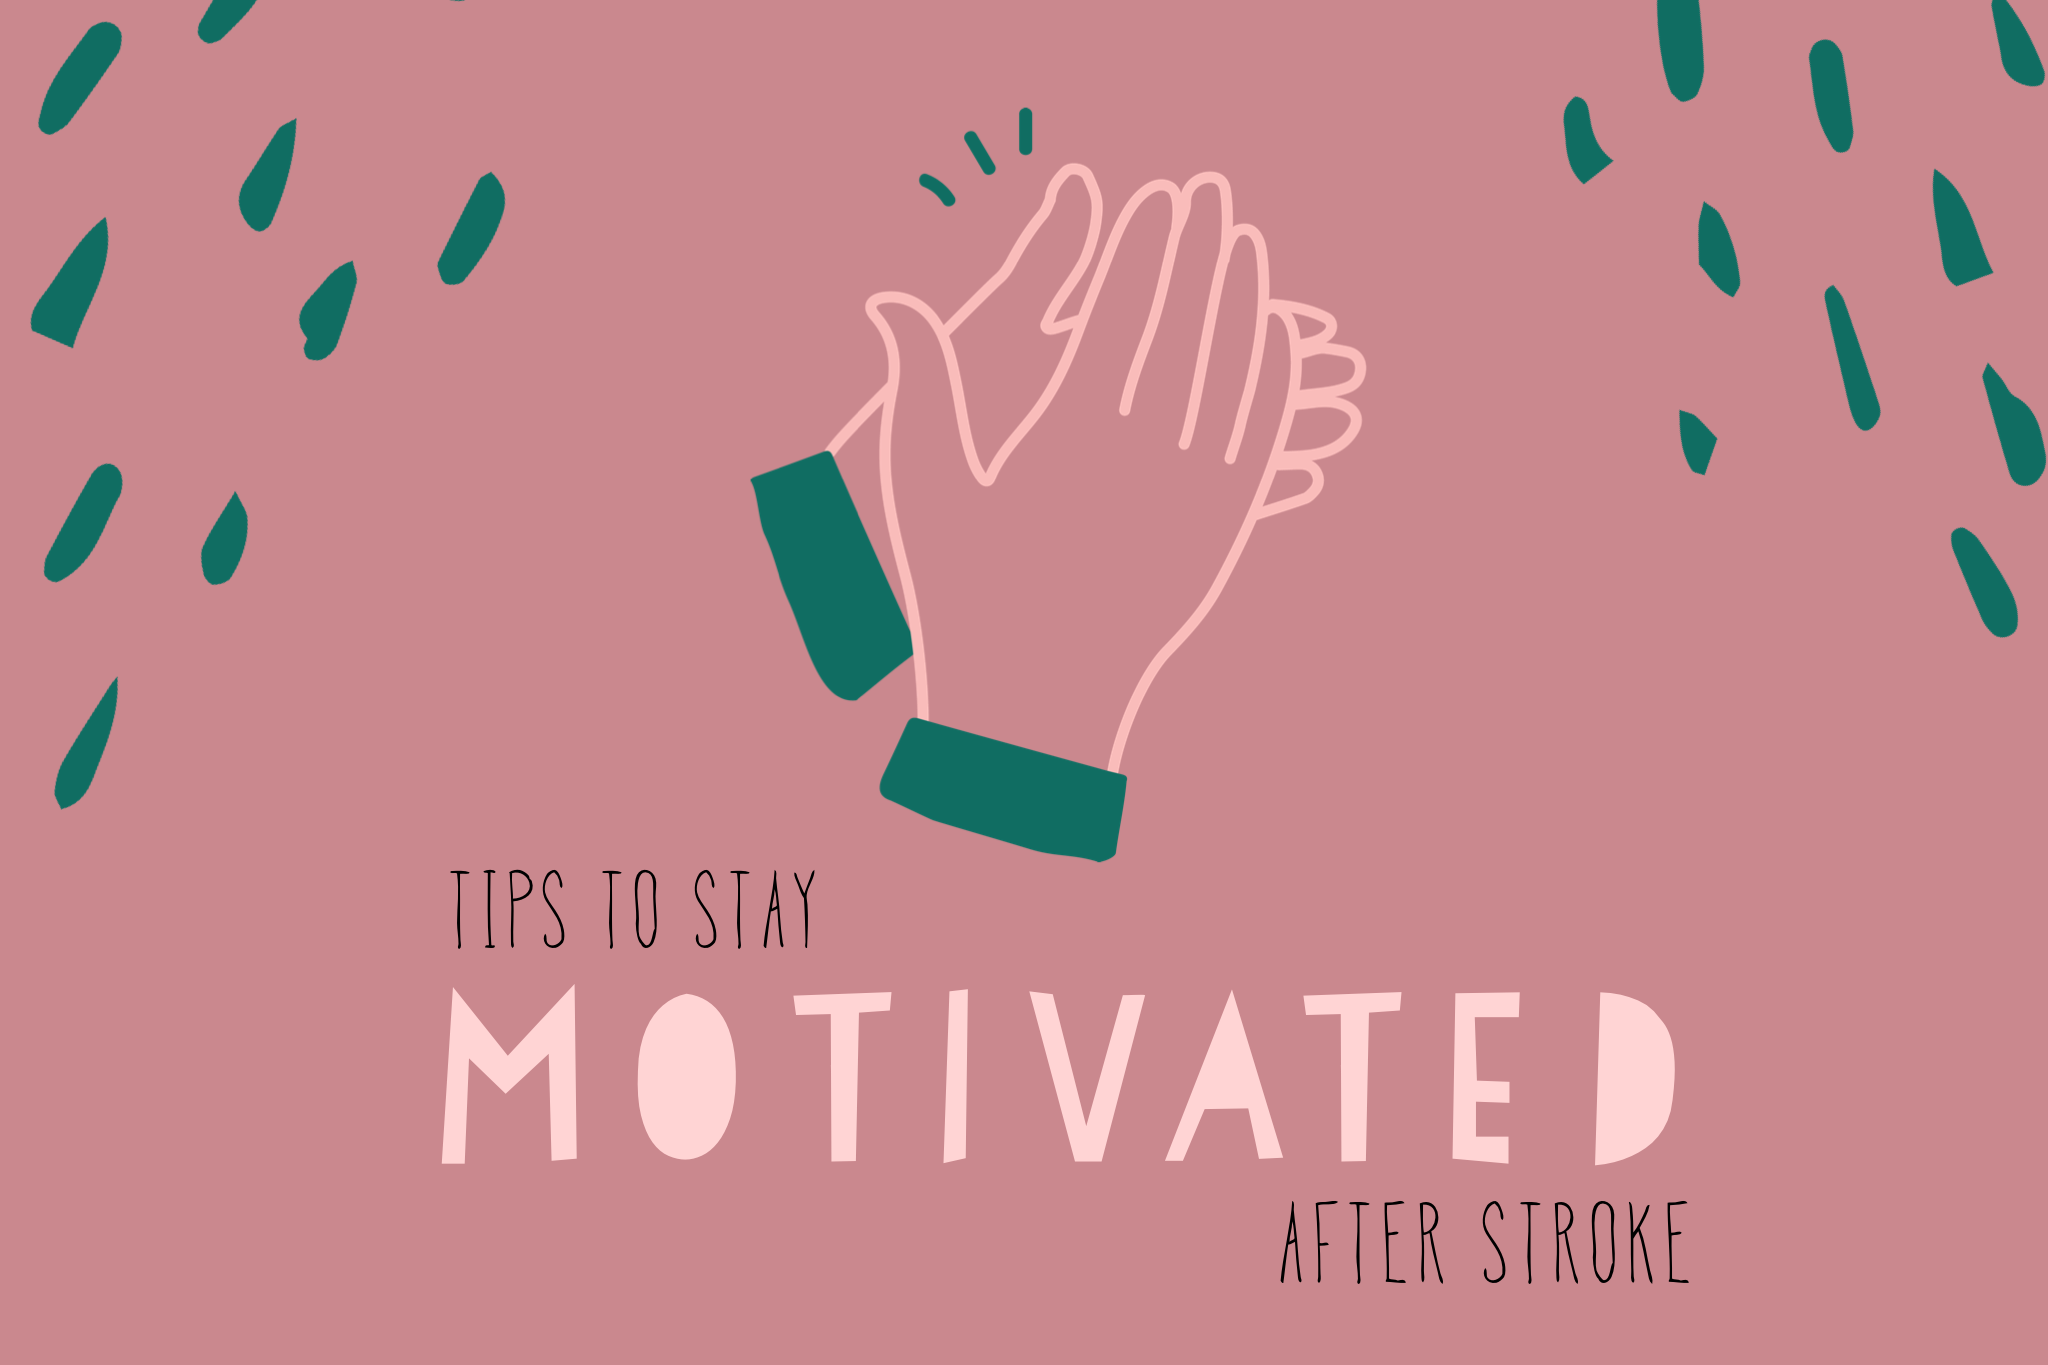 Staying Motivated After Stroke